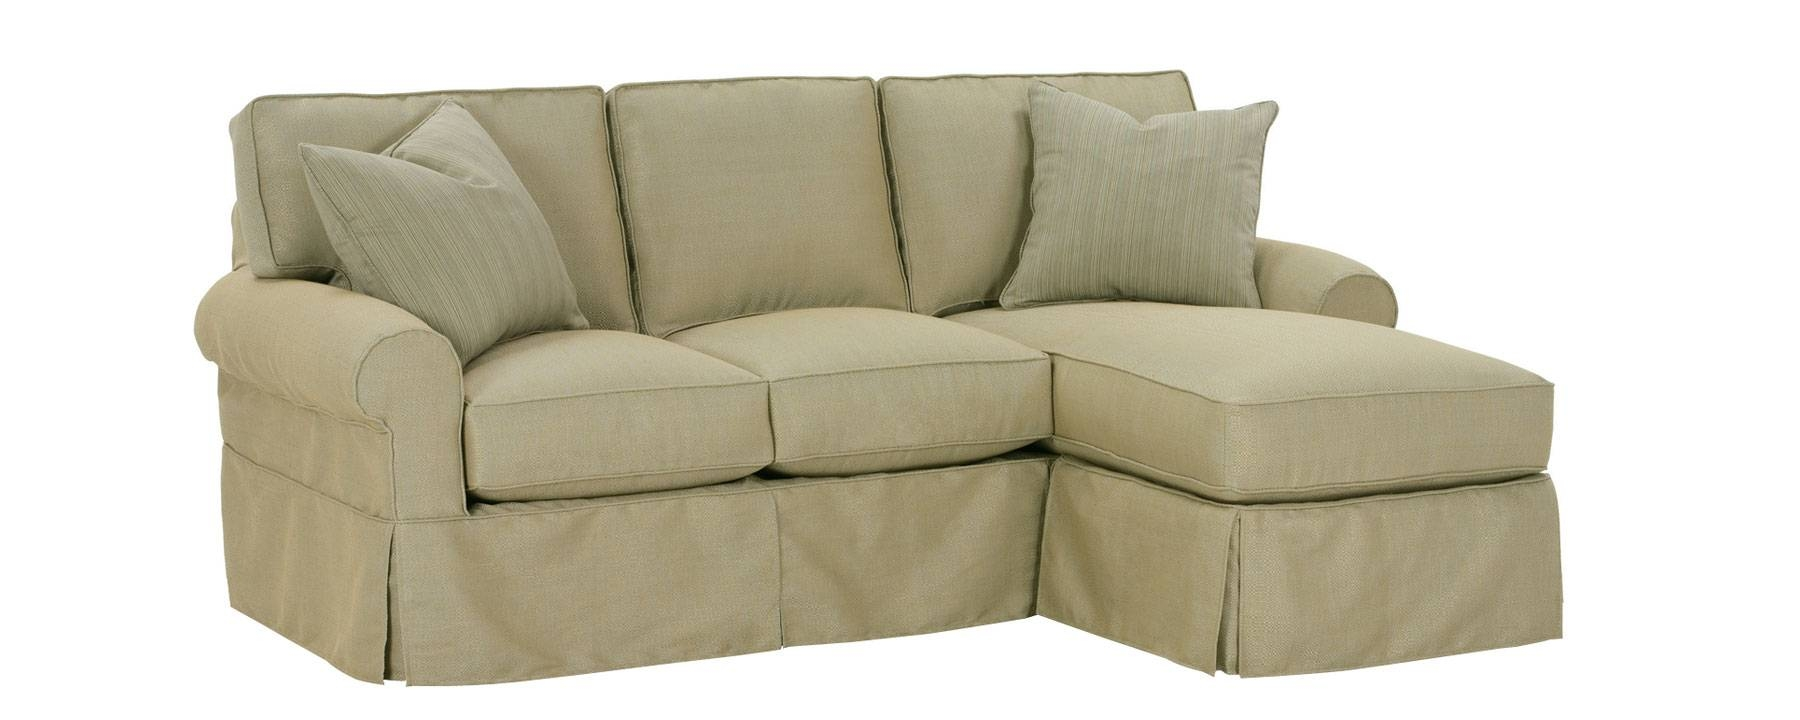 Small Slipcovered Sectional Sofa W/ Reversible Chaise & Rolled Arms with regard to Slipcovered Chaises (Image 12 of 15)